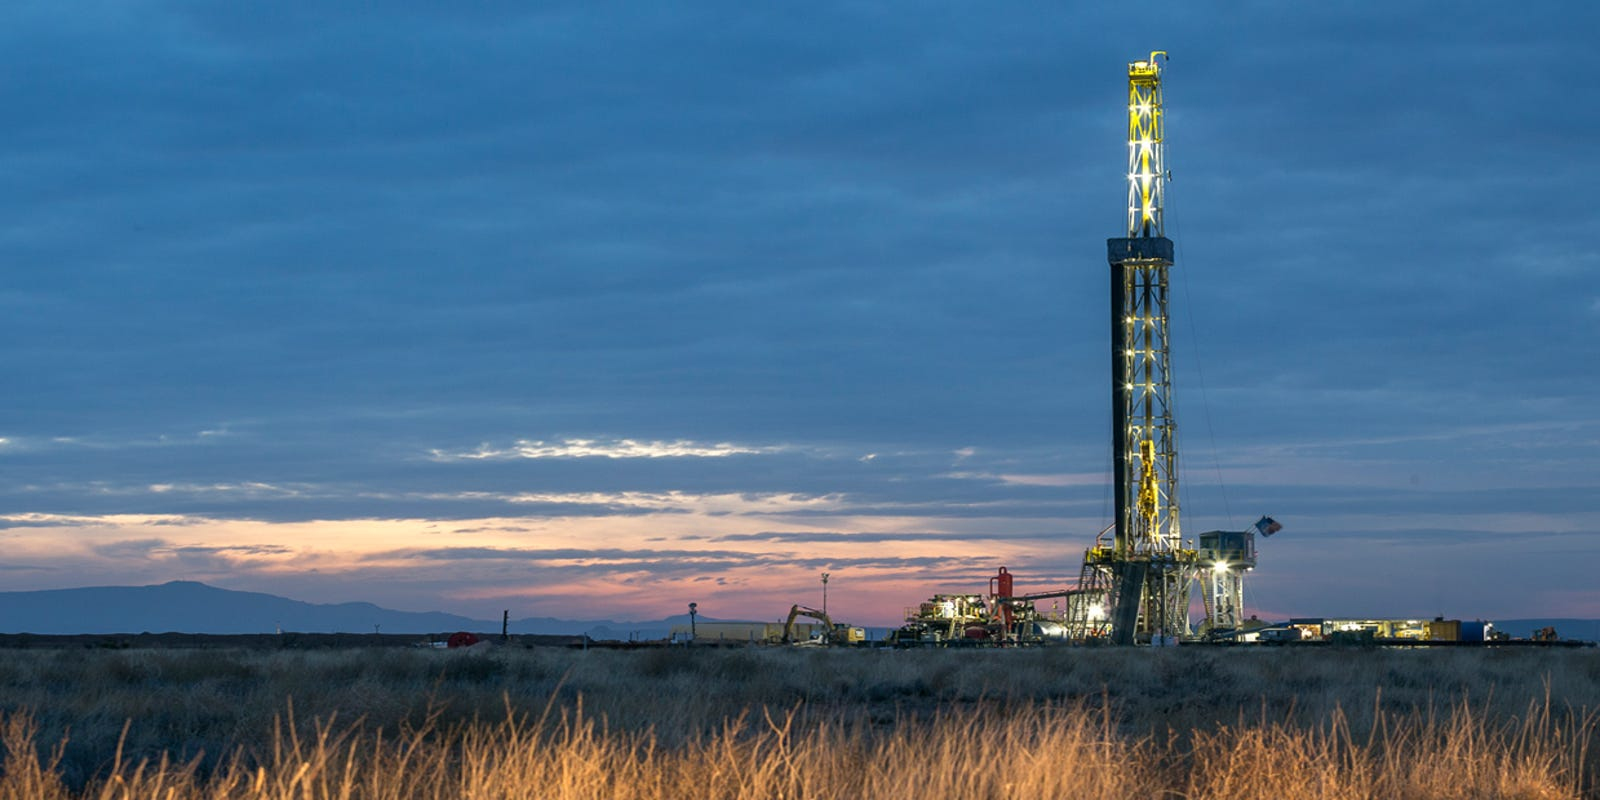 Concho Resources Reaches 430M Deal For New Mexico Acreage